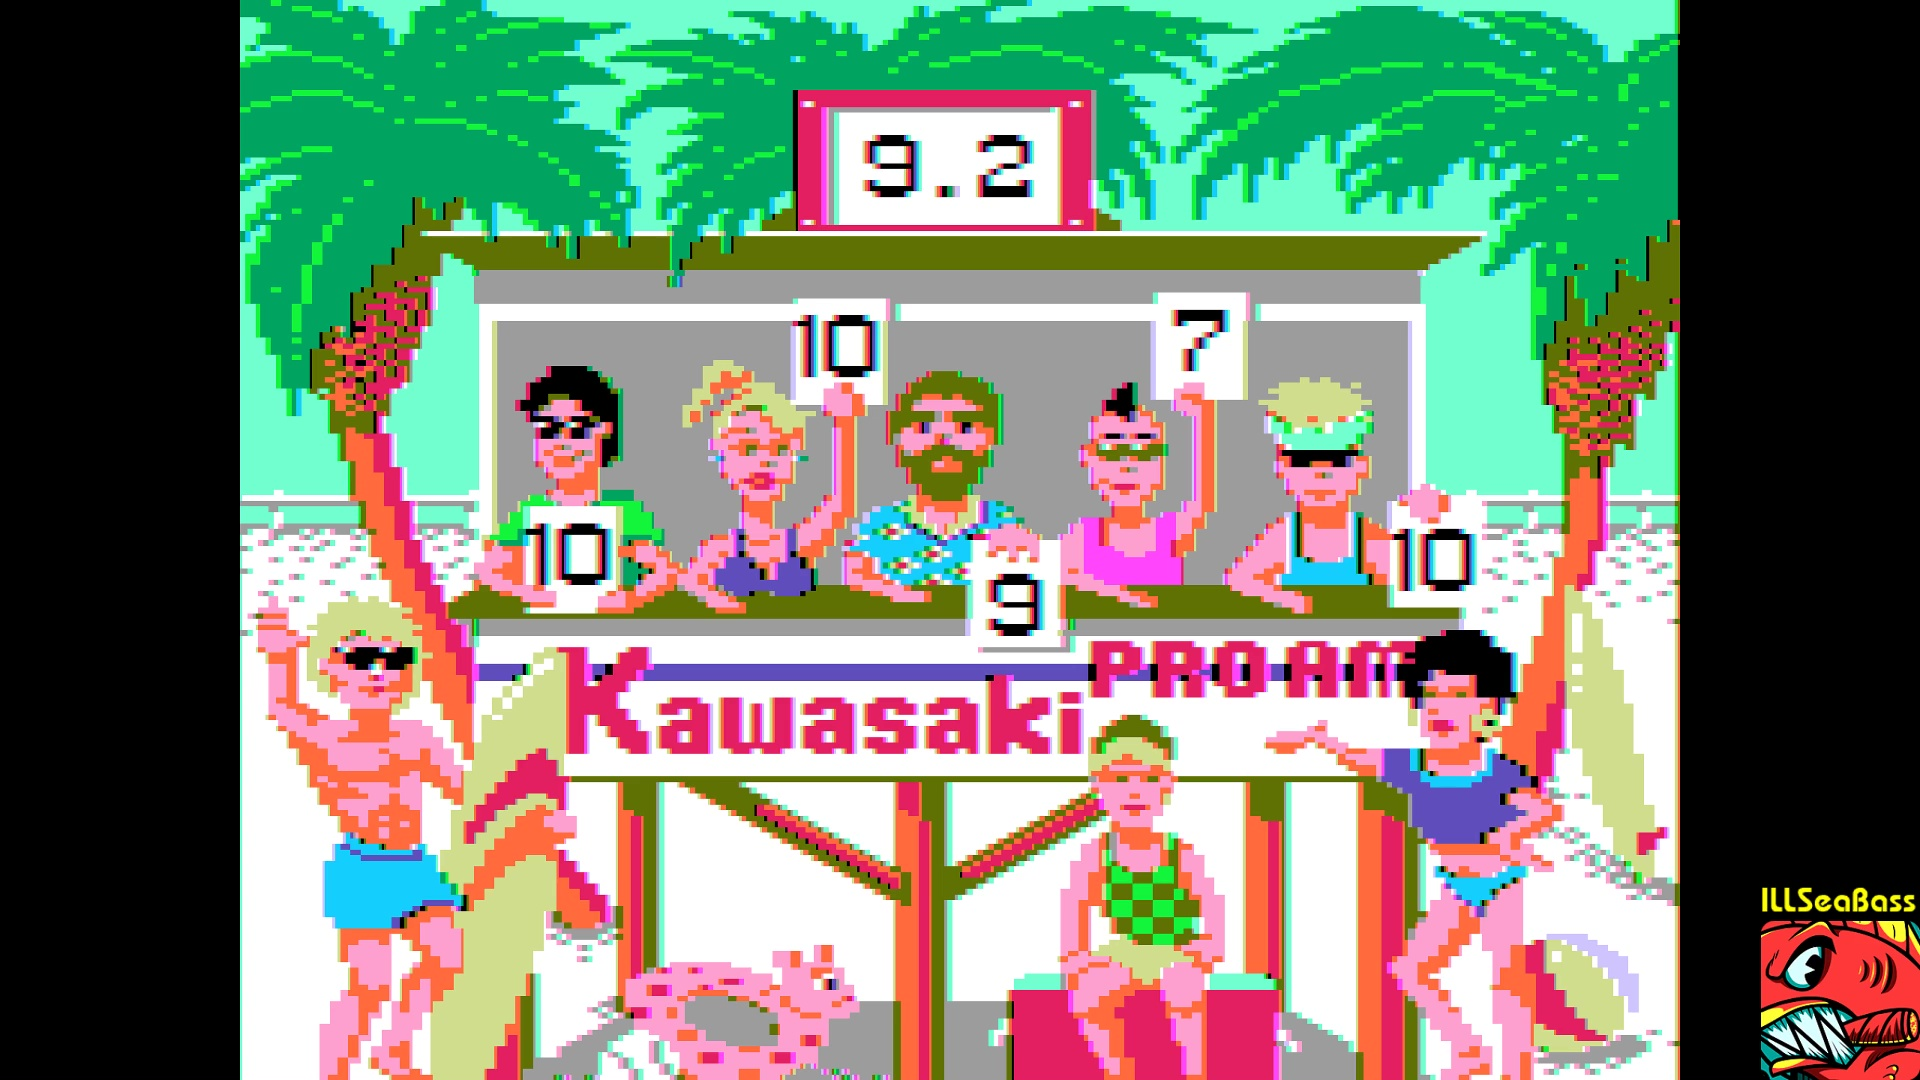 ILLSeaBass: California Games: Surfing [Score * 10] (Apple II Emulated) 92 points on 2018-01-13 09:13:07